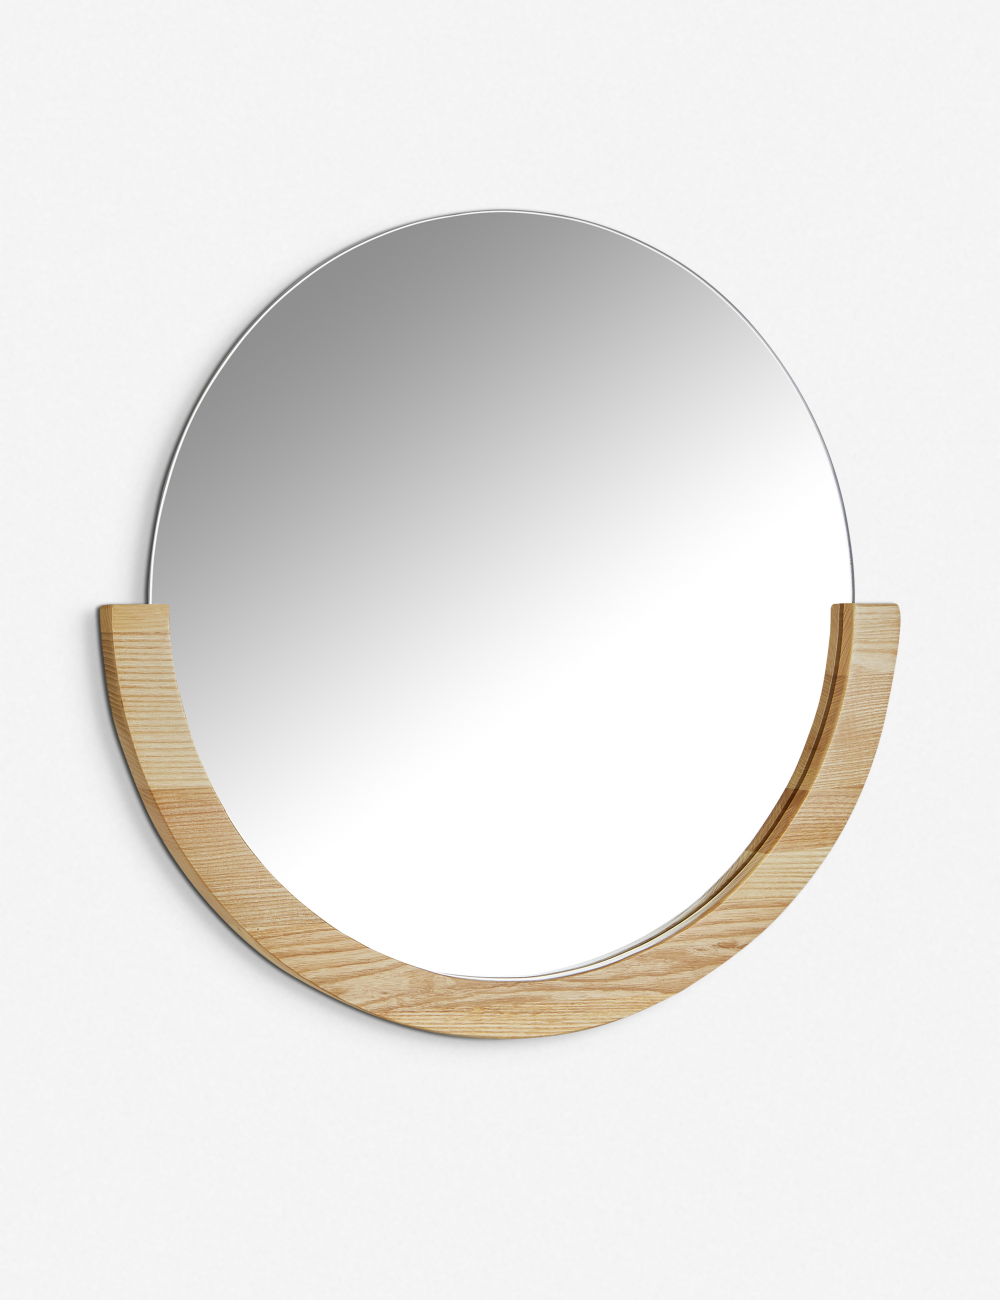 A Semi Circle Wooden Frame Encompasses This Circular Mirror For Added Visual Interest While A Neutral Color Allows It T Mirror Circular Mirror Natural Mirrors